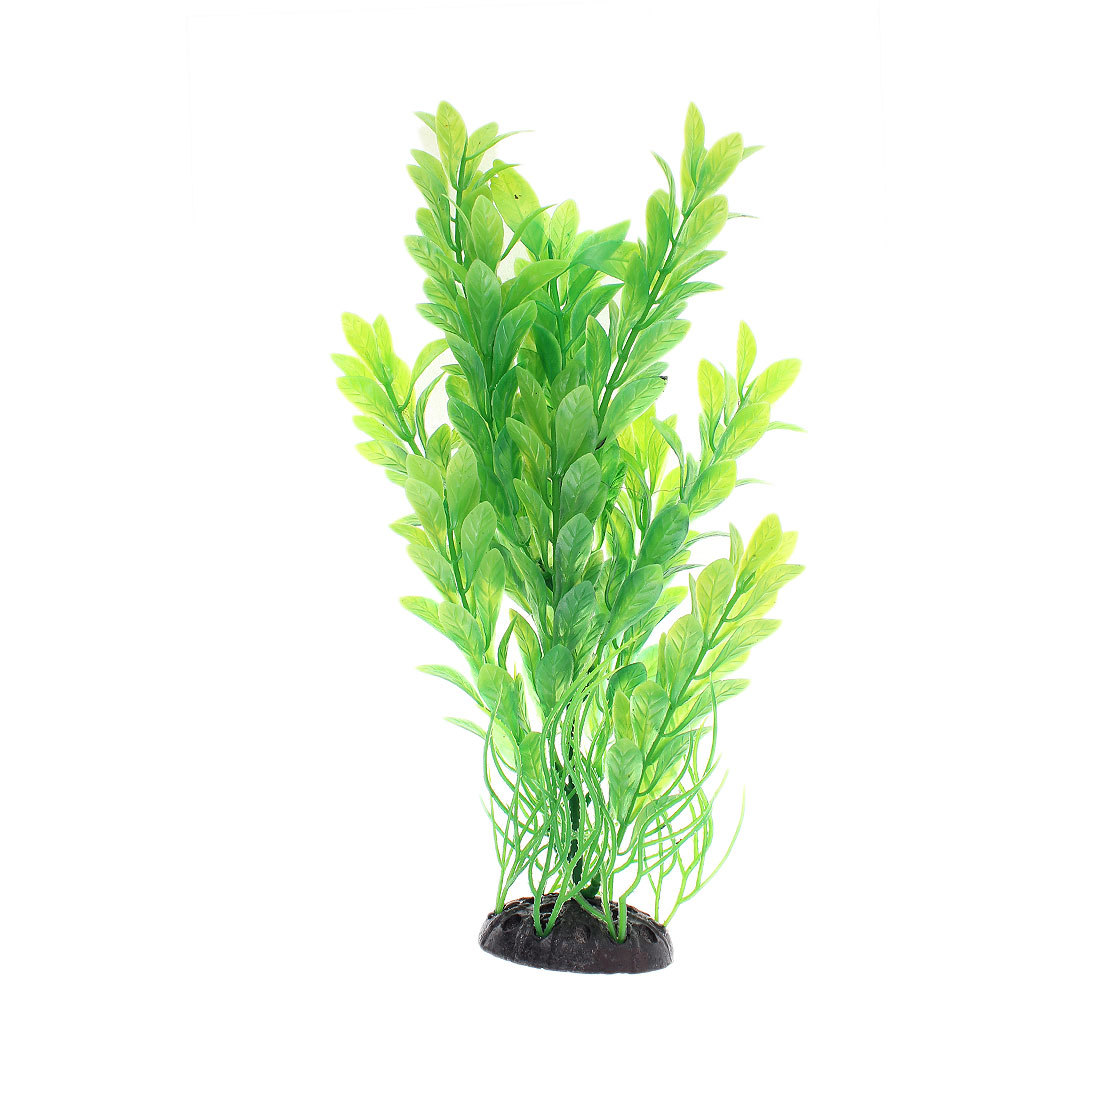 "Aquarium Plastic Artificial Plant Ornament Green 10"" Height"